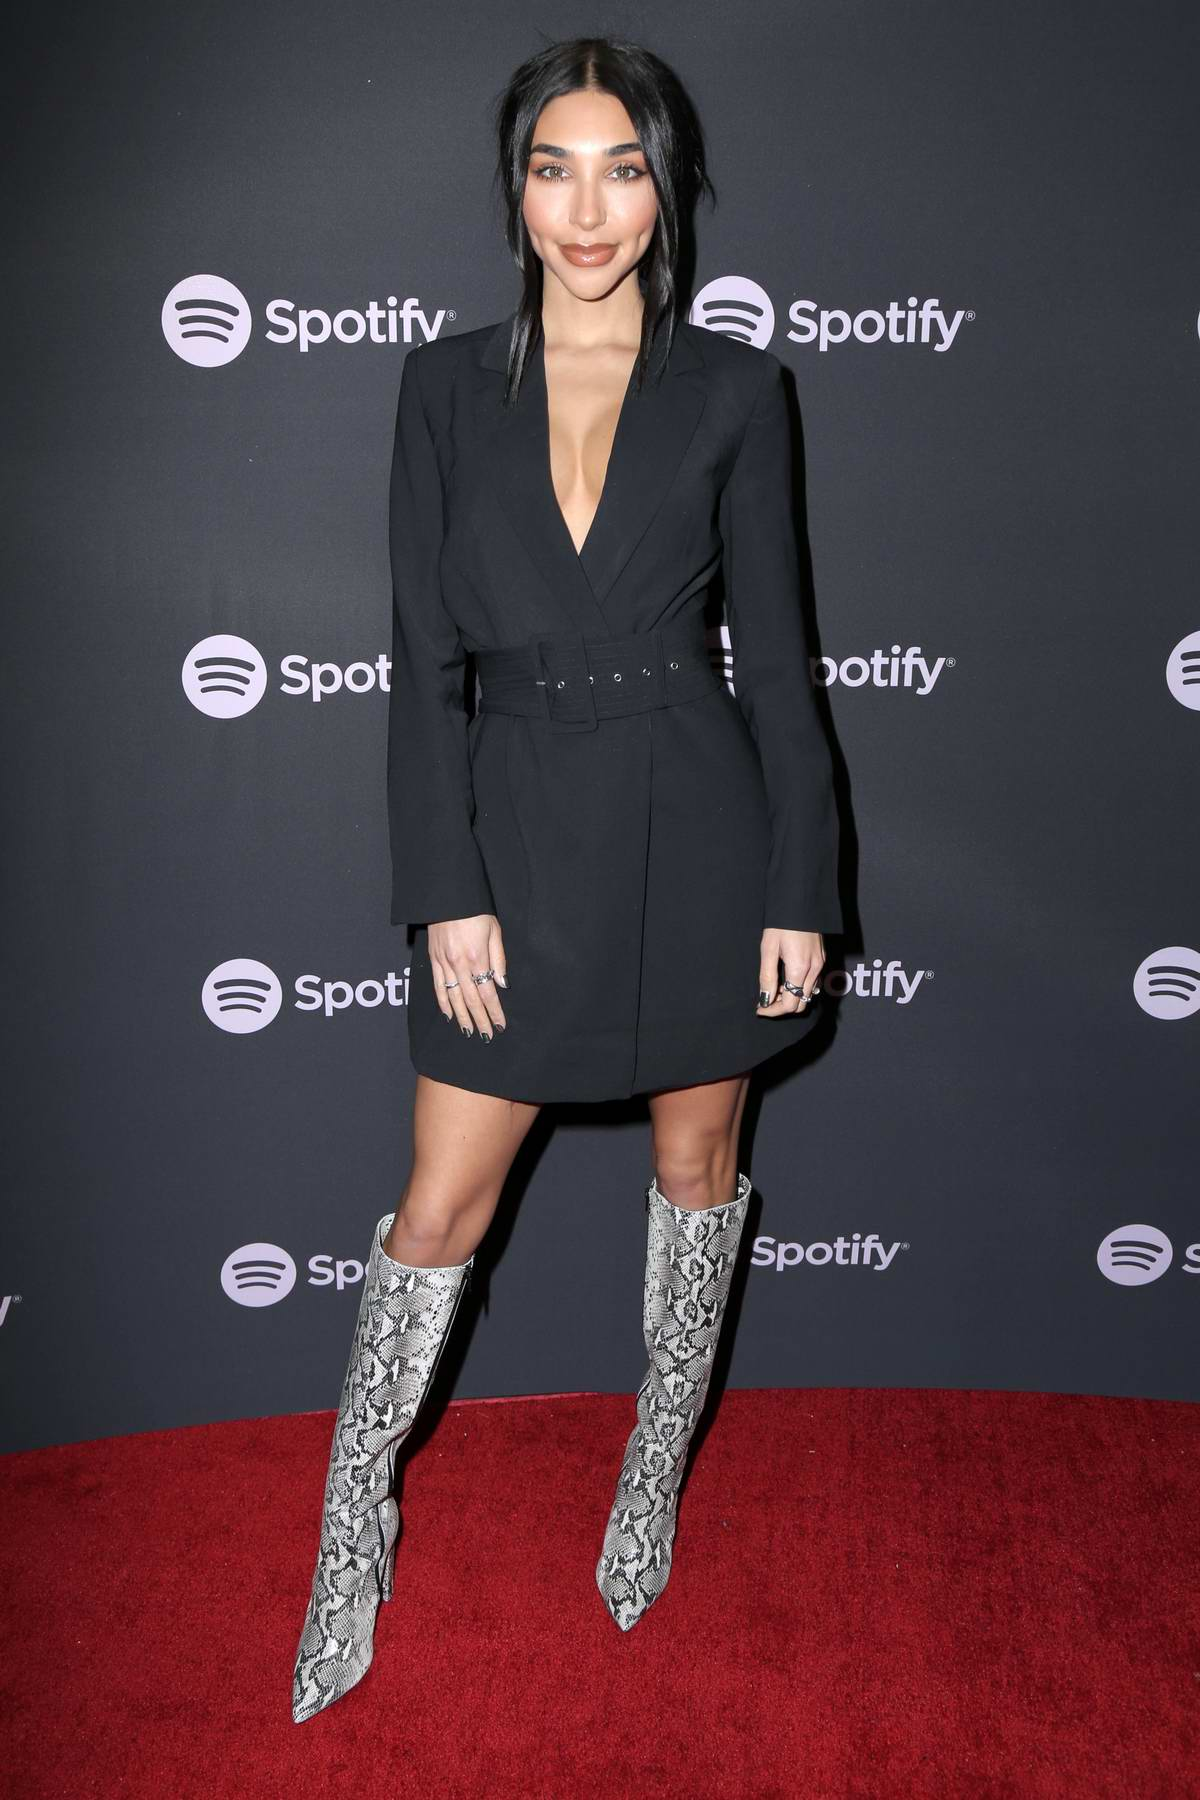 Chantel Jeffries attends the Spotify 'Best New Artist 2019' event at Hammer Museum in Los Angeles